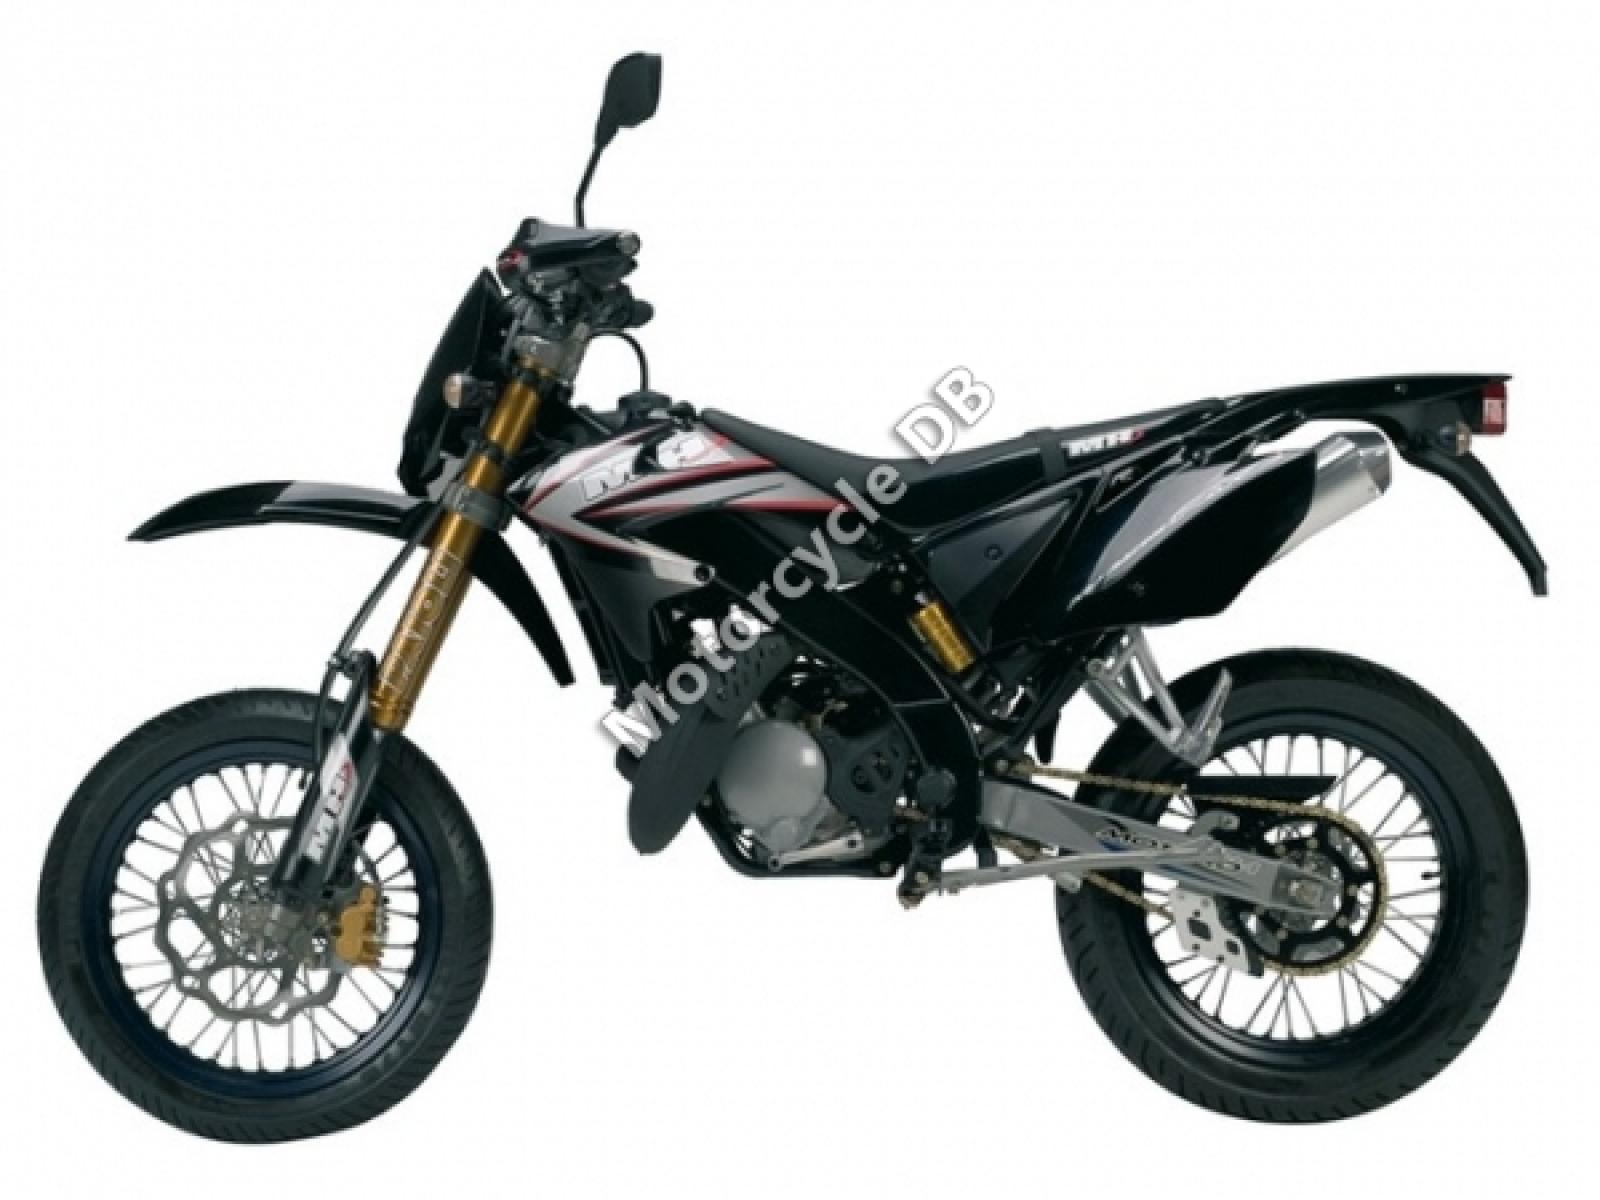 Motorhispania RYZ 49 Supermotard images #112557